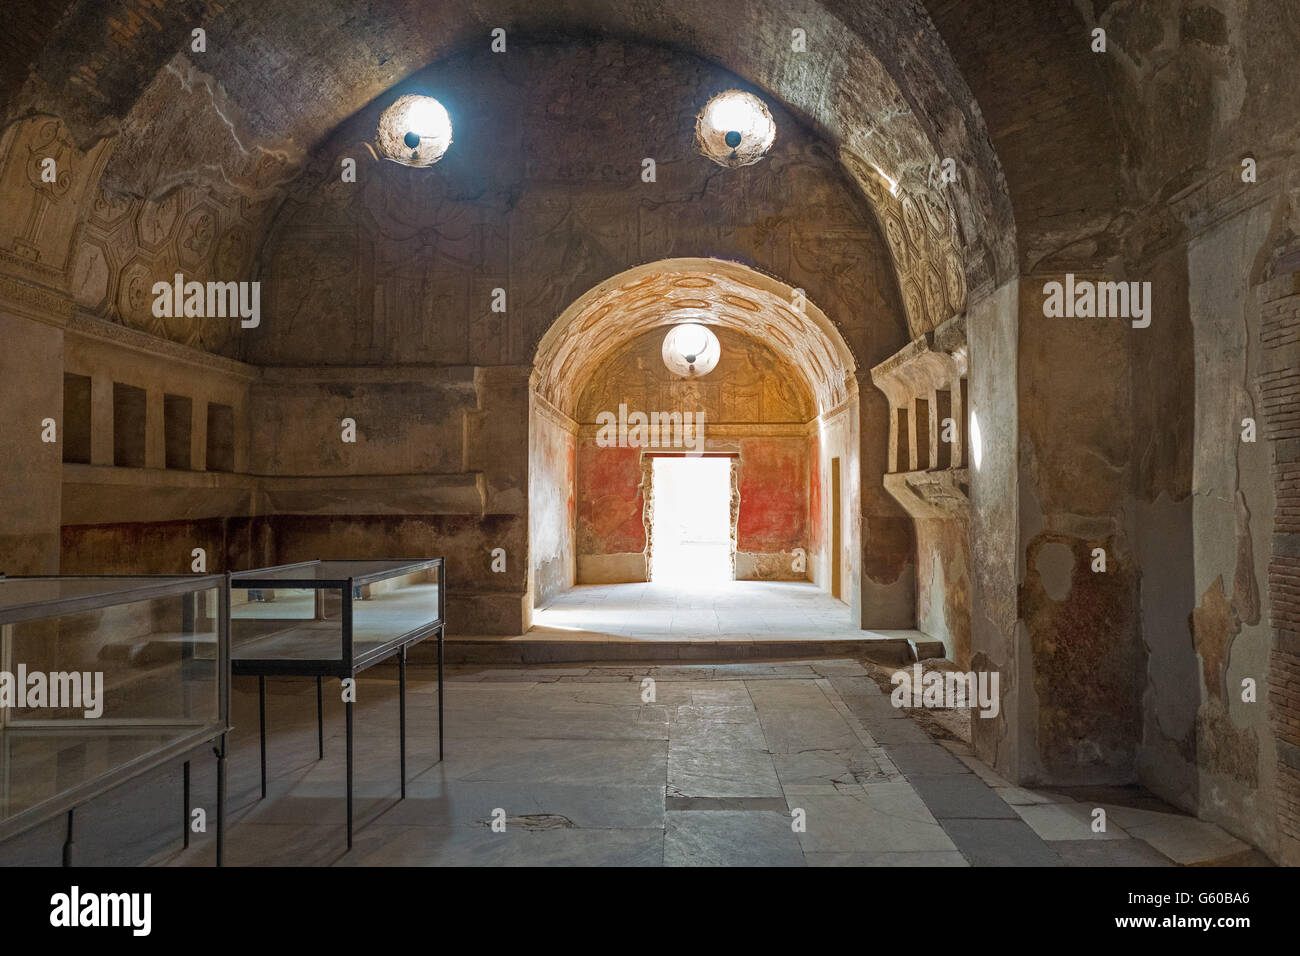 Italy, Pompei, the Stabiane Spas of the archaeological site - Stock Image